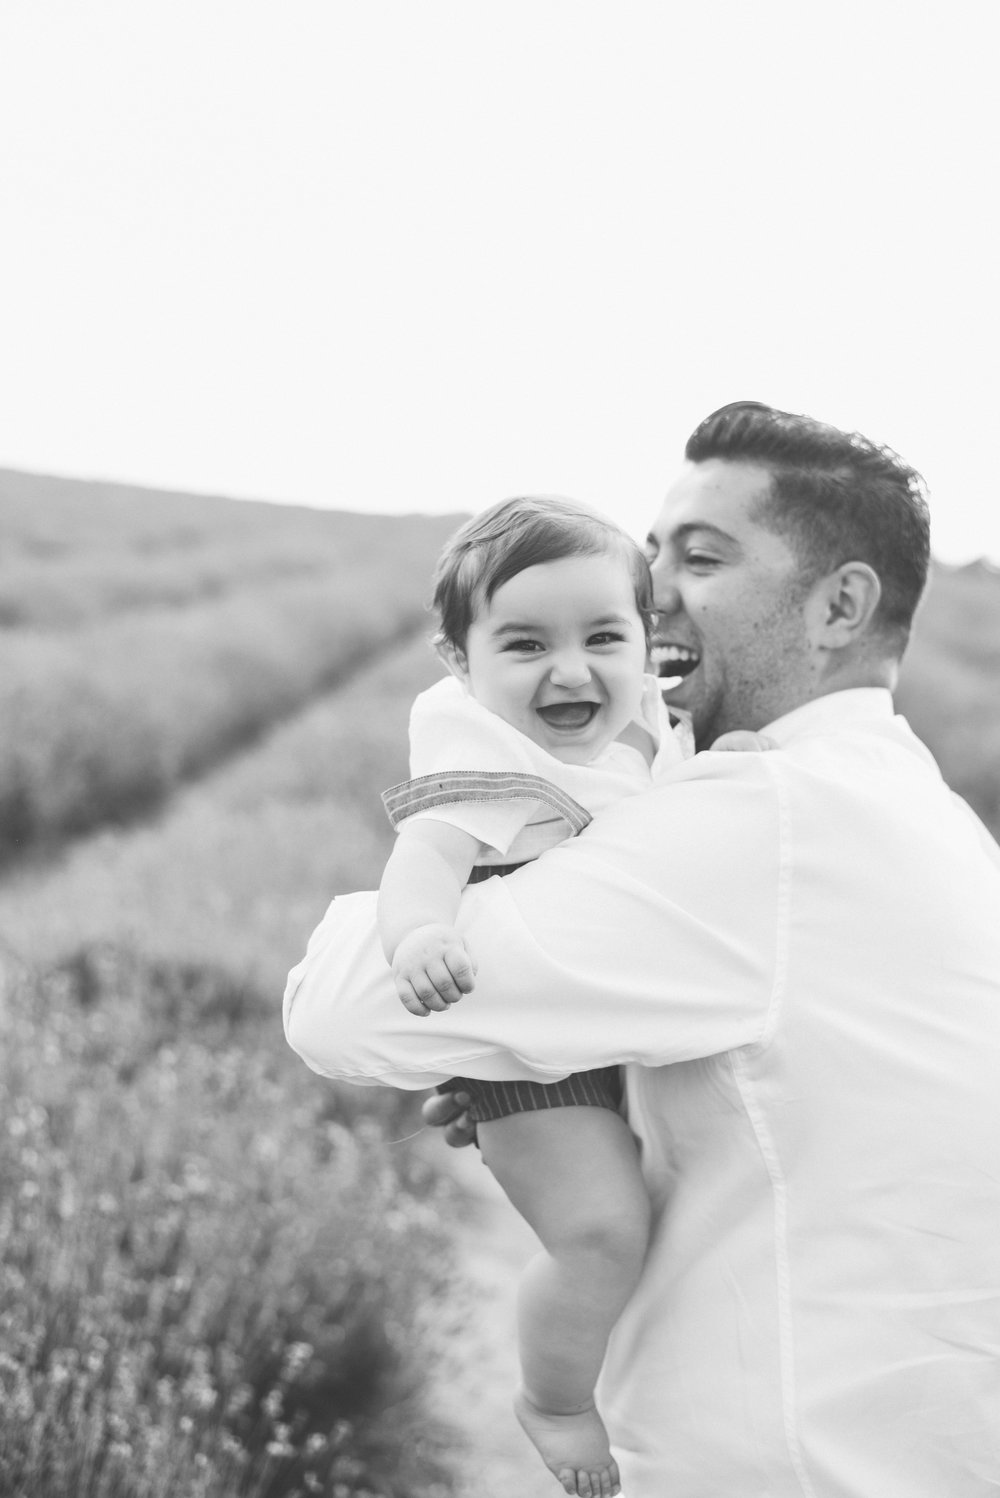 Outdoor professional family photography London